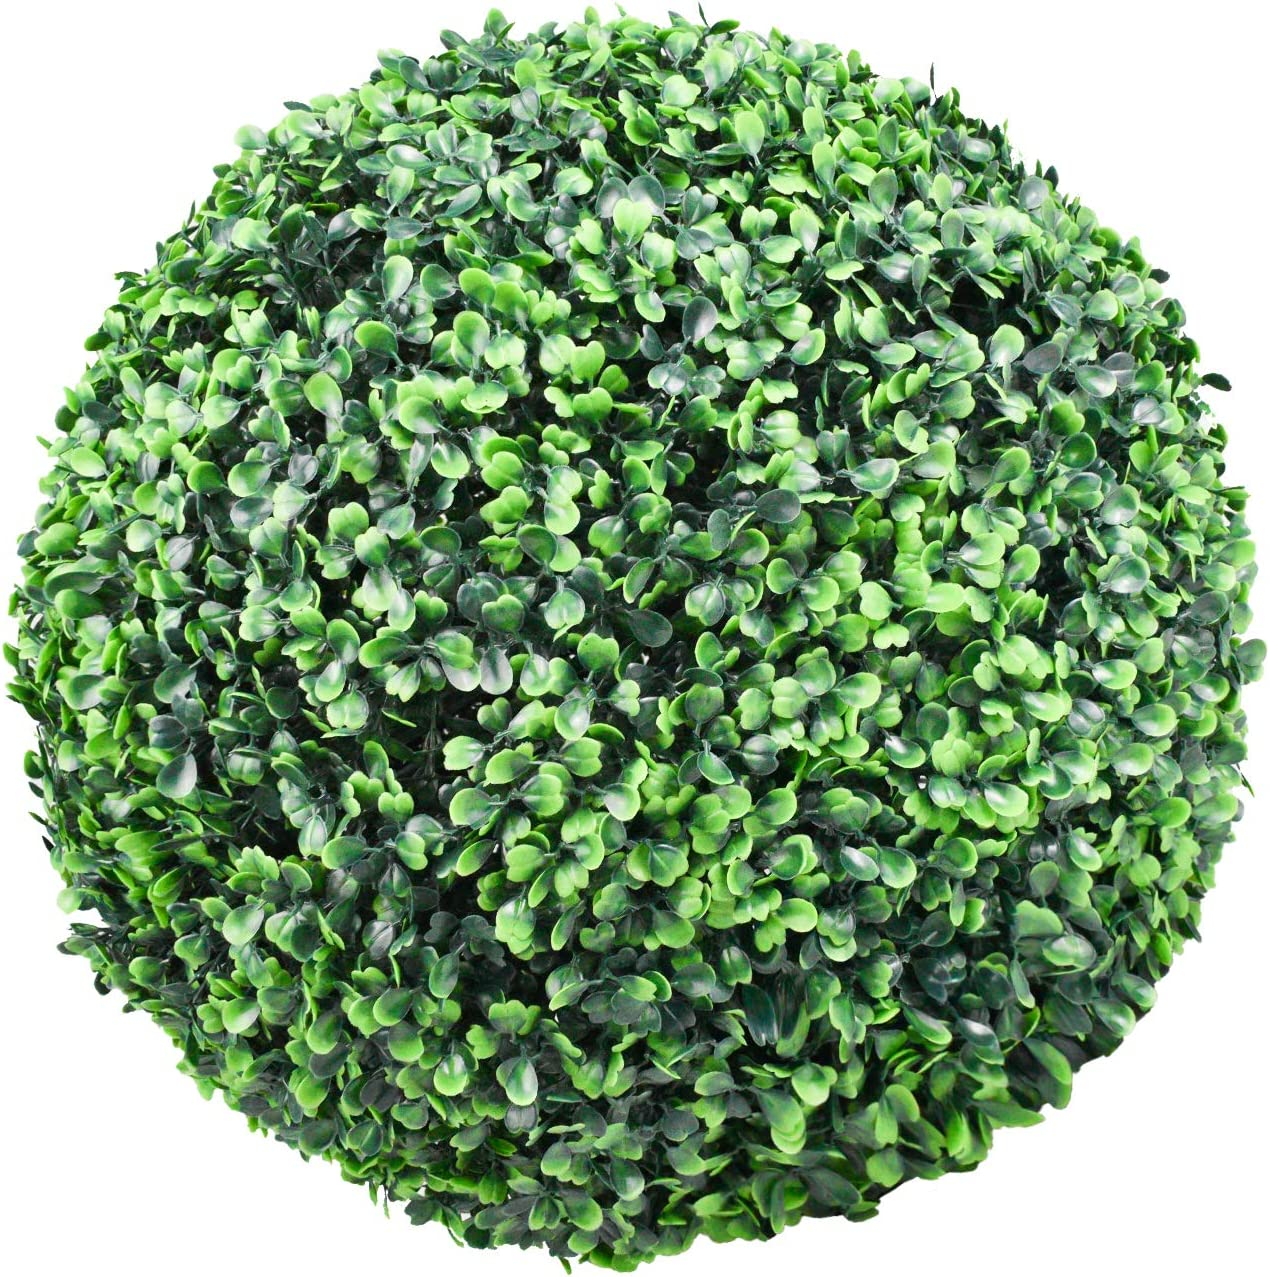 Dealway 4-Layers Max 43% OFF Boxwood Topiary Ball - 1 Gr Super special price Pack 11